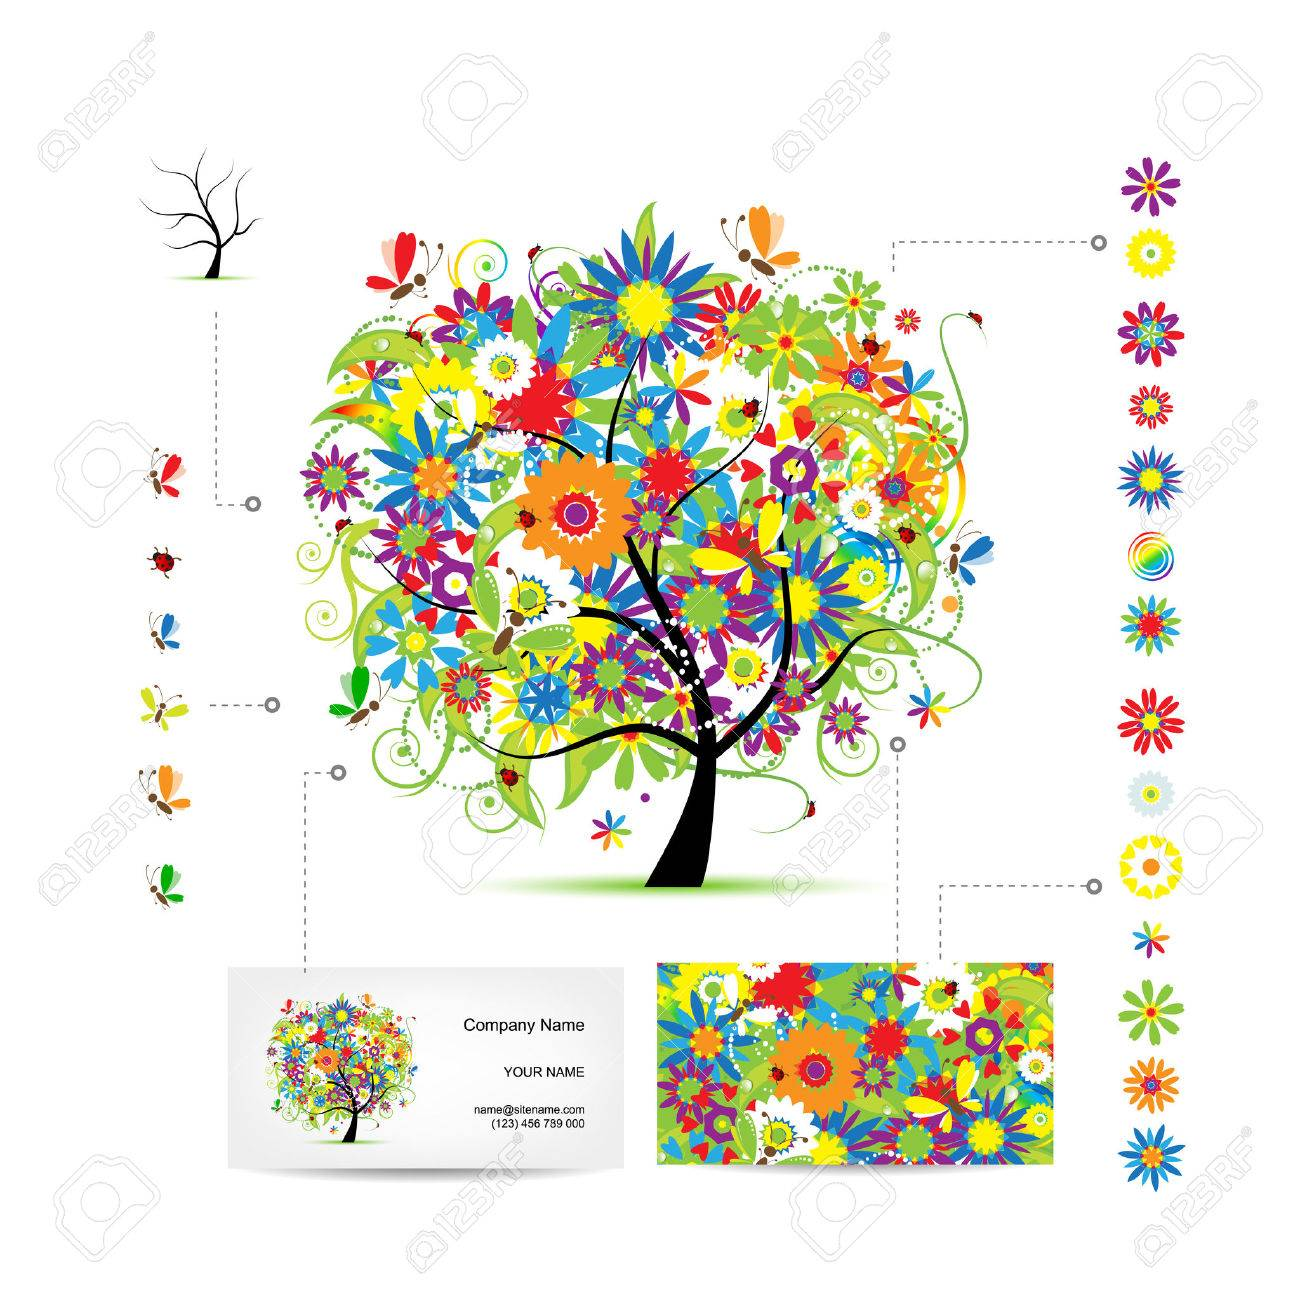 Palm tree business cards gallery free business cards business card tree images free business cards infographic tree with funny birds business card template royalty magicingreecefo Choice Image